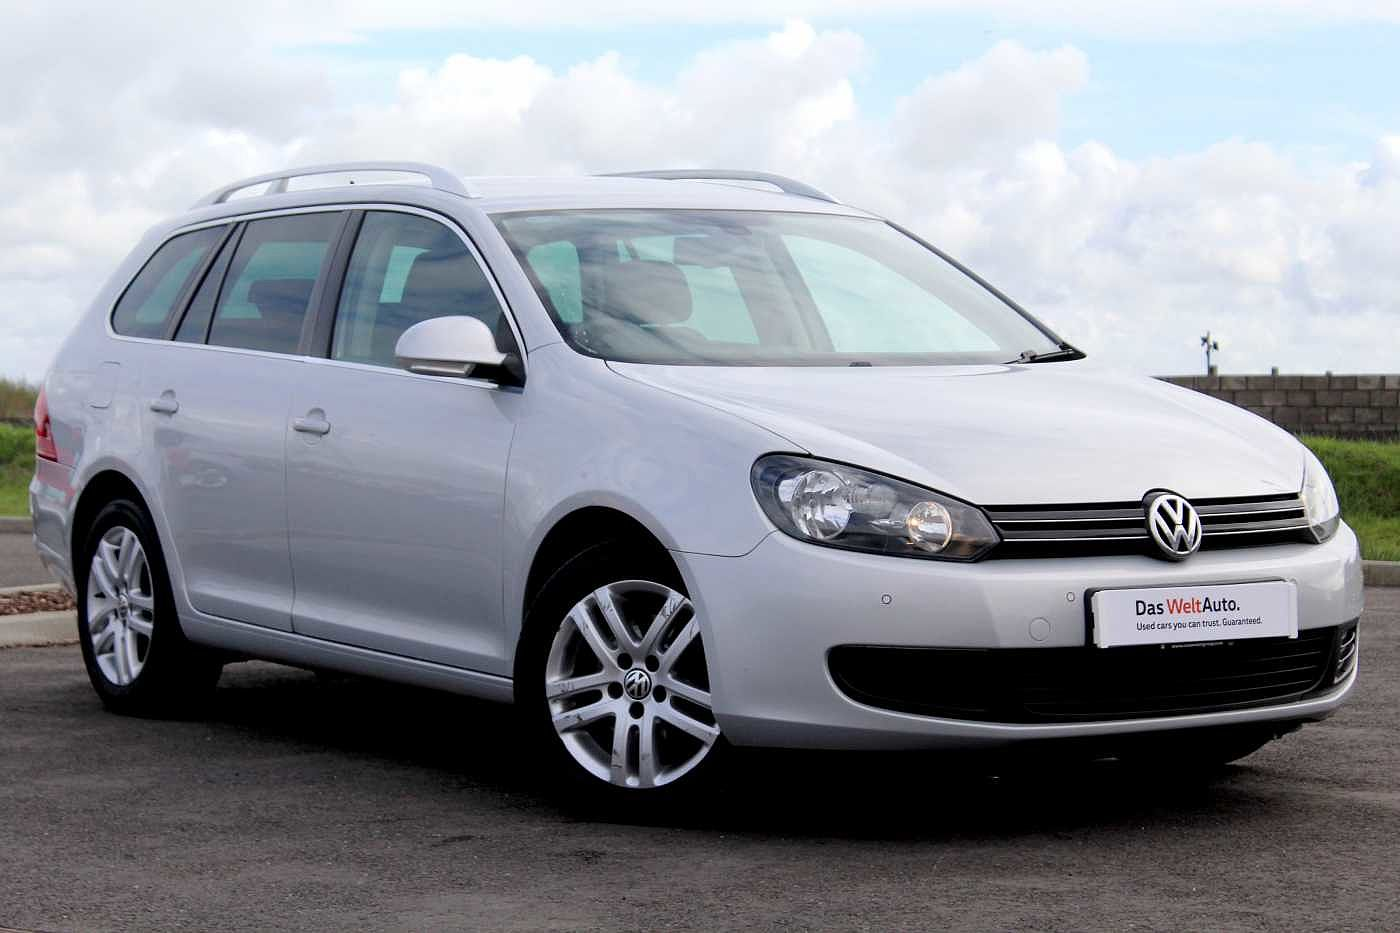 Volkswagen Golf 2.0 TDI SE 140PS DSG Estate